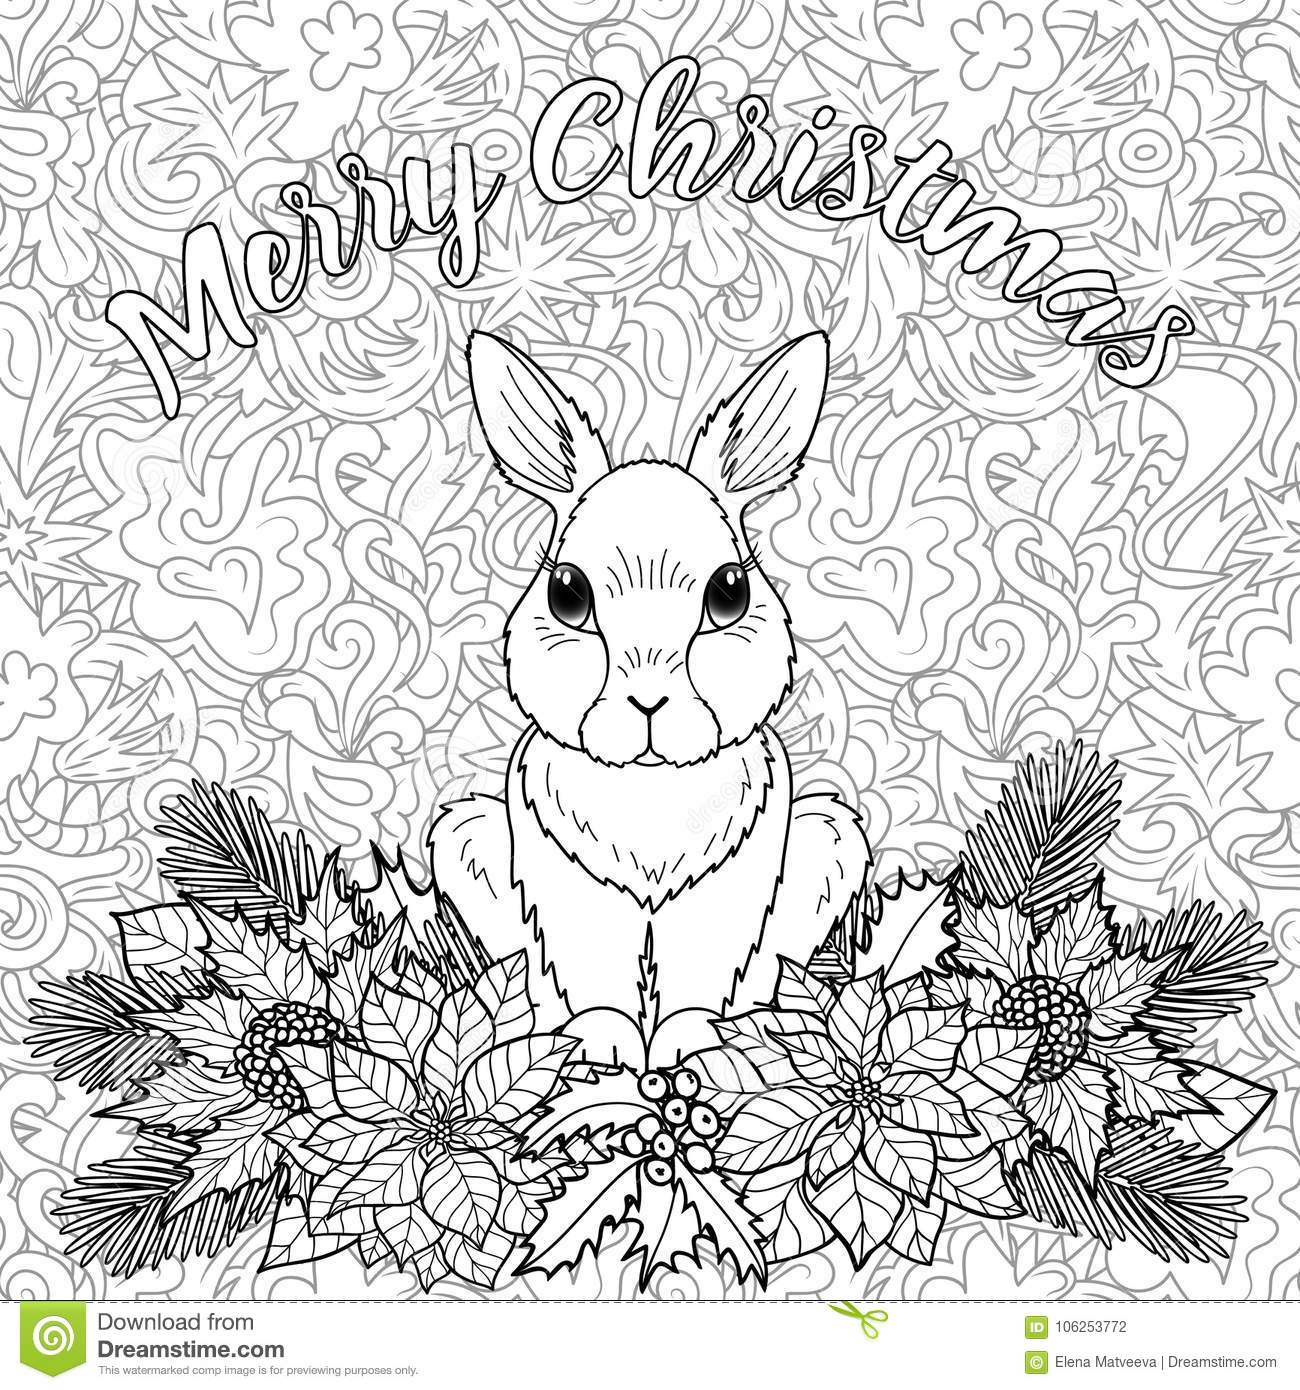 download merry christmas coloring page with rabbit stock vector illustration of merry christmas